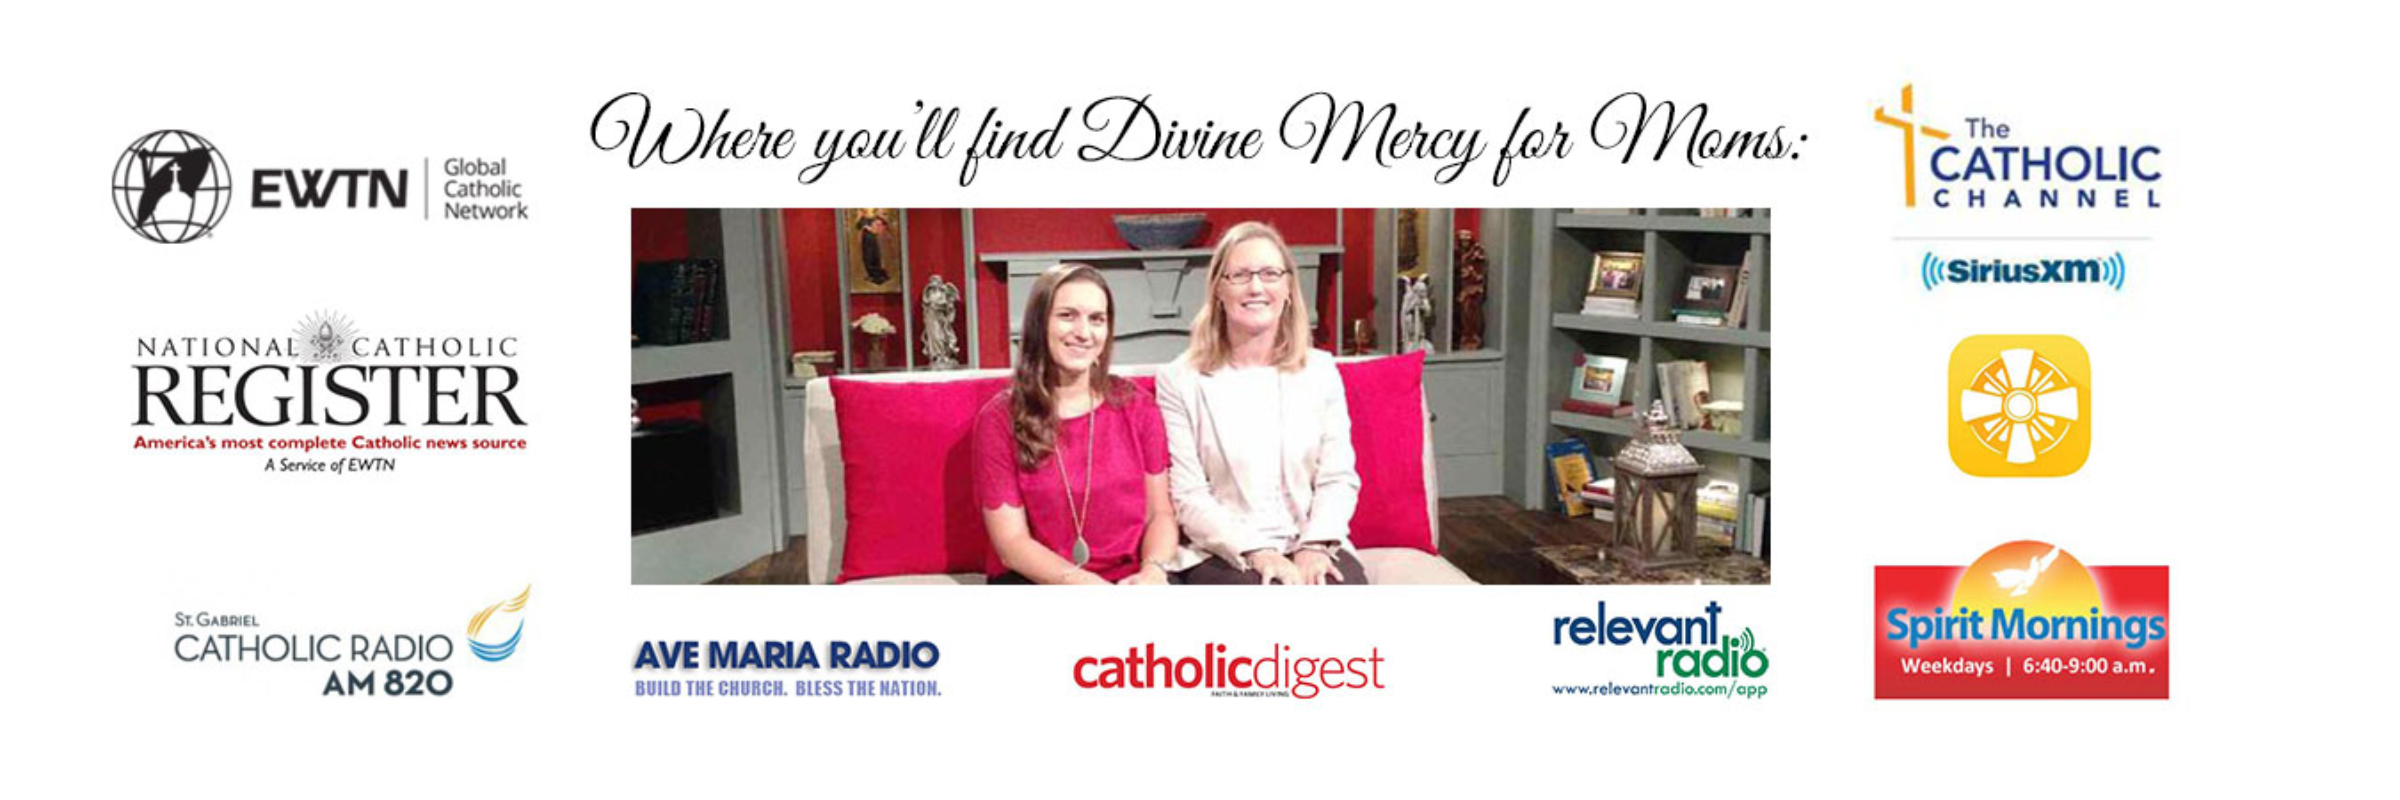 Media places where you'll find Divine Mercy for Moms